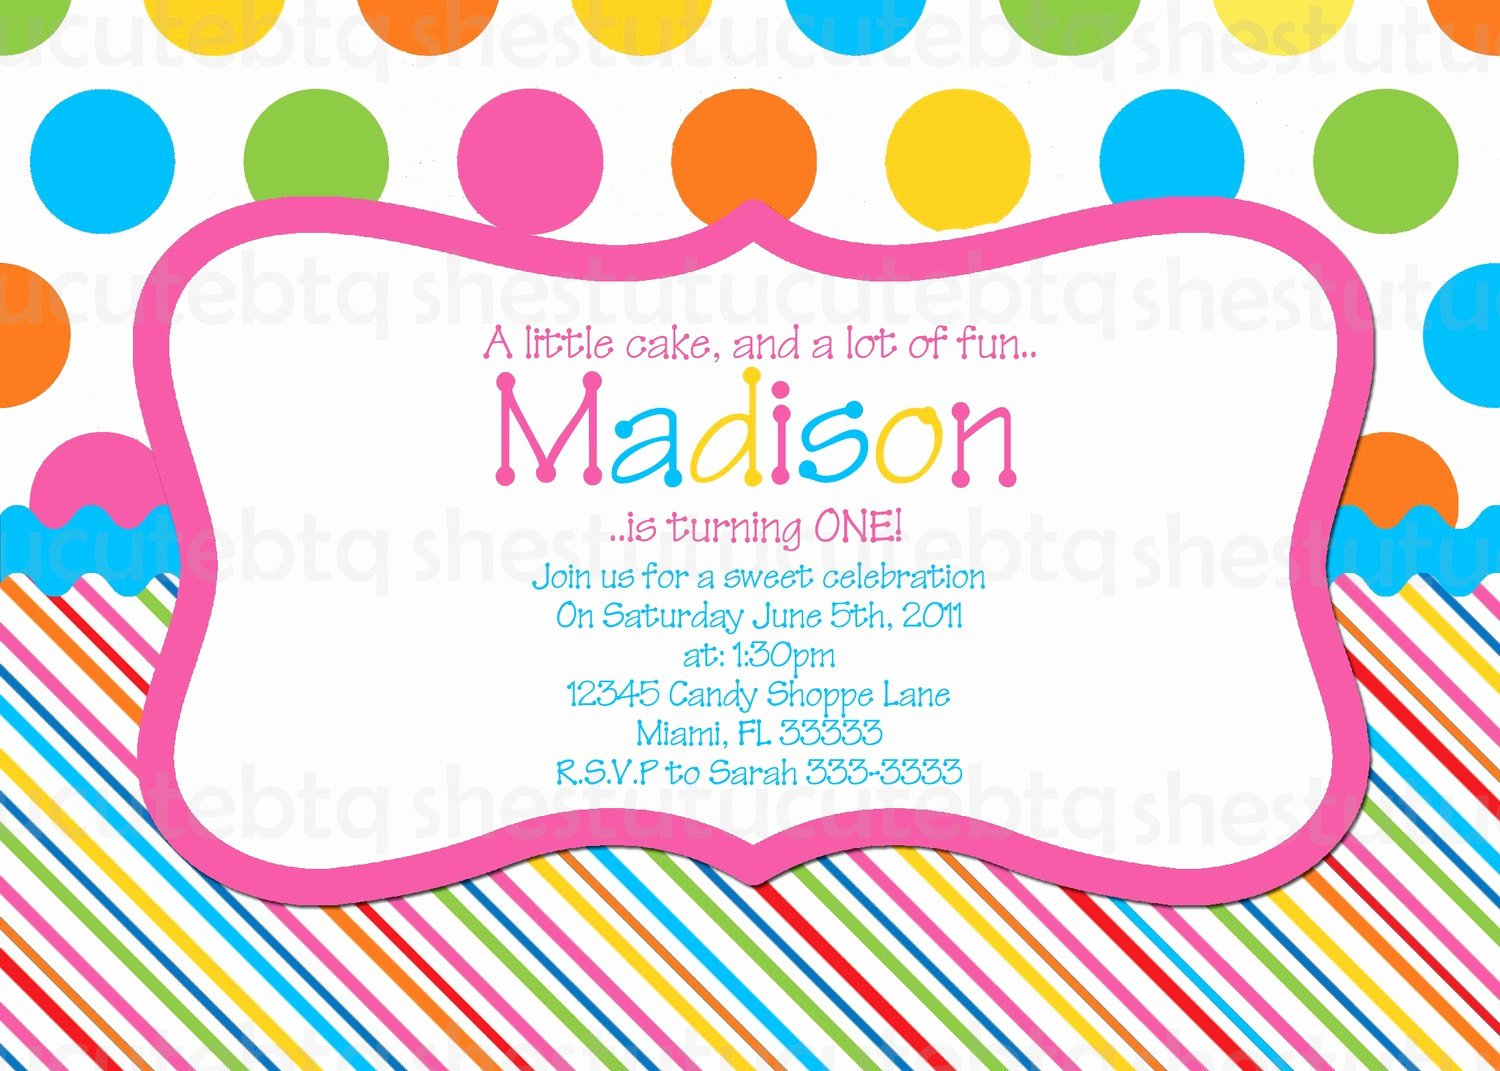 Polka Dot Invitation Template Luxury Polka Dot Invitations Free